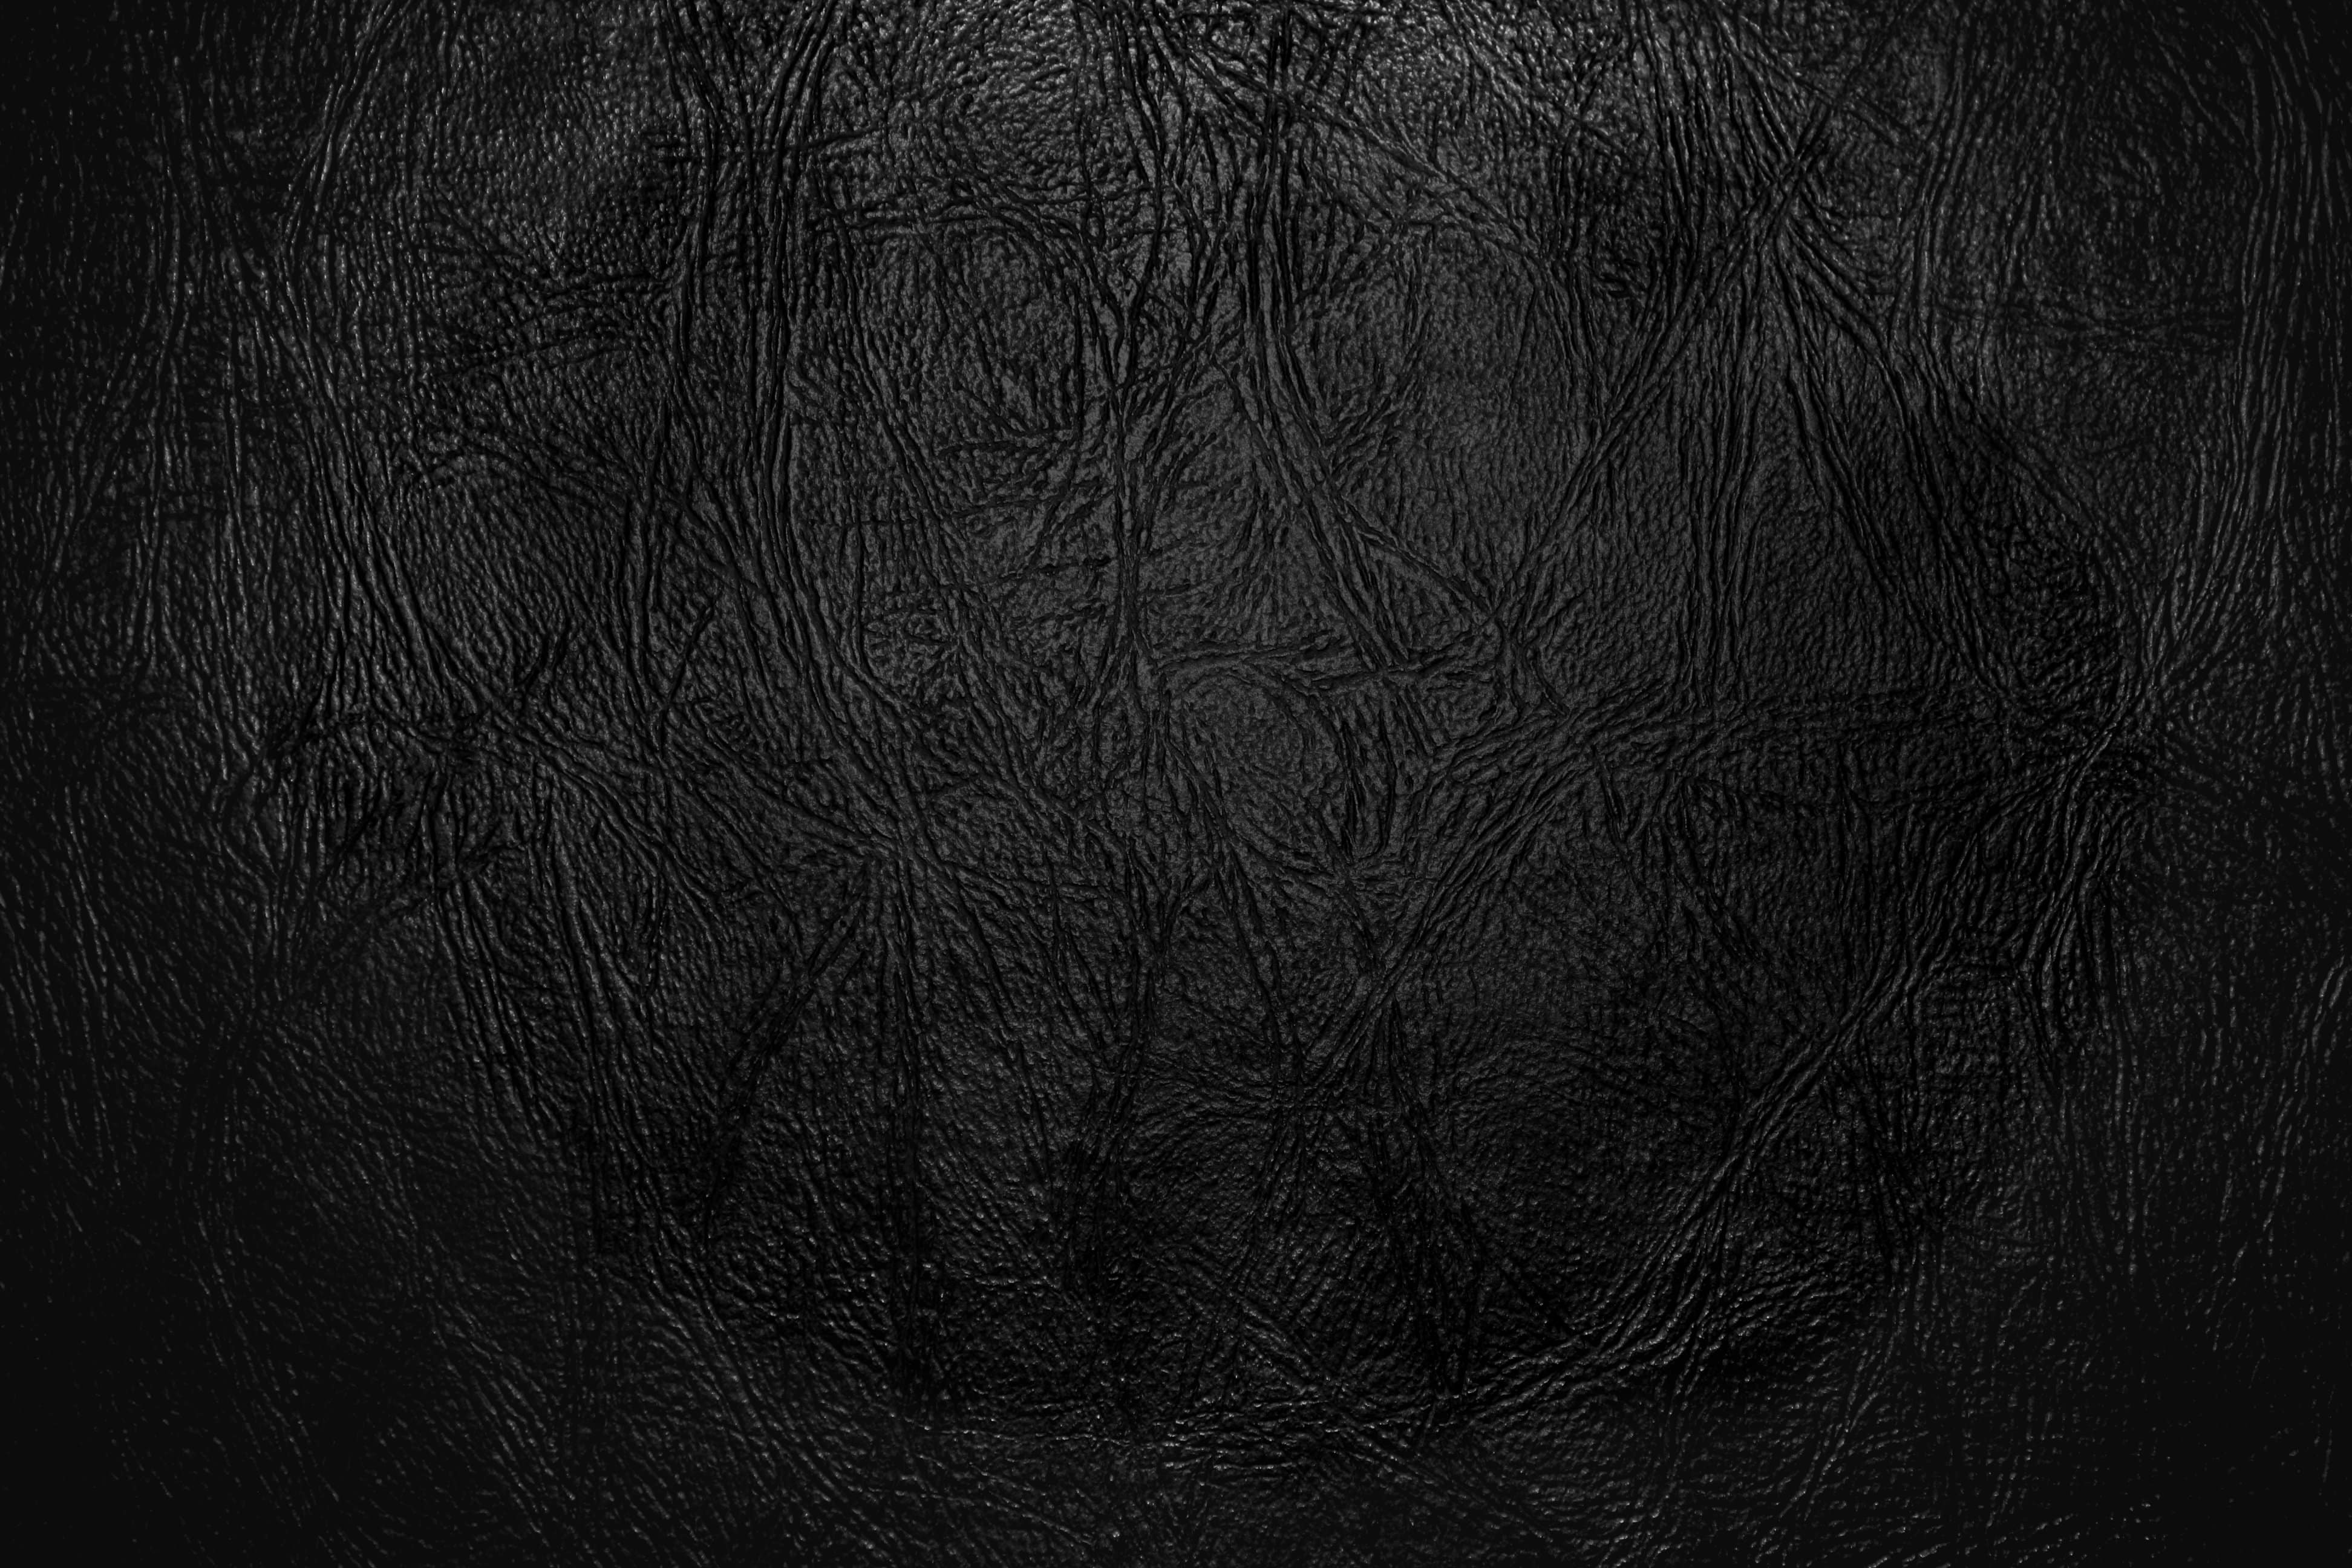 textures-wallpapers-262-black-leather-close-up-texture-picture-free ... for Black Leather Texture Hd  555kxo